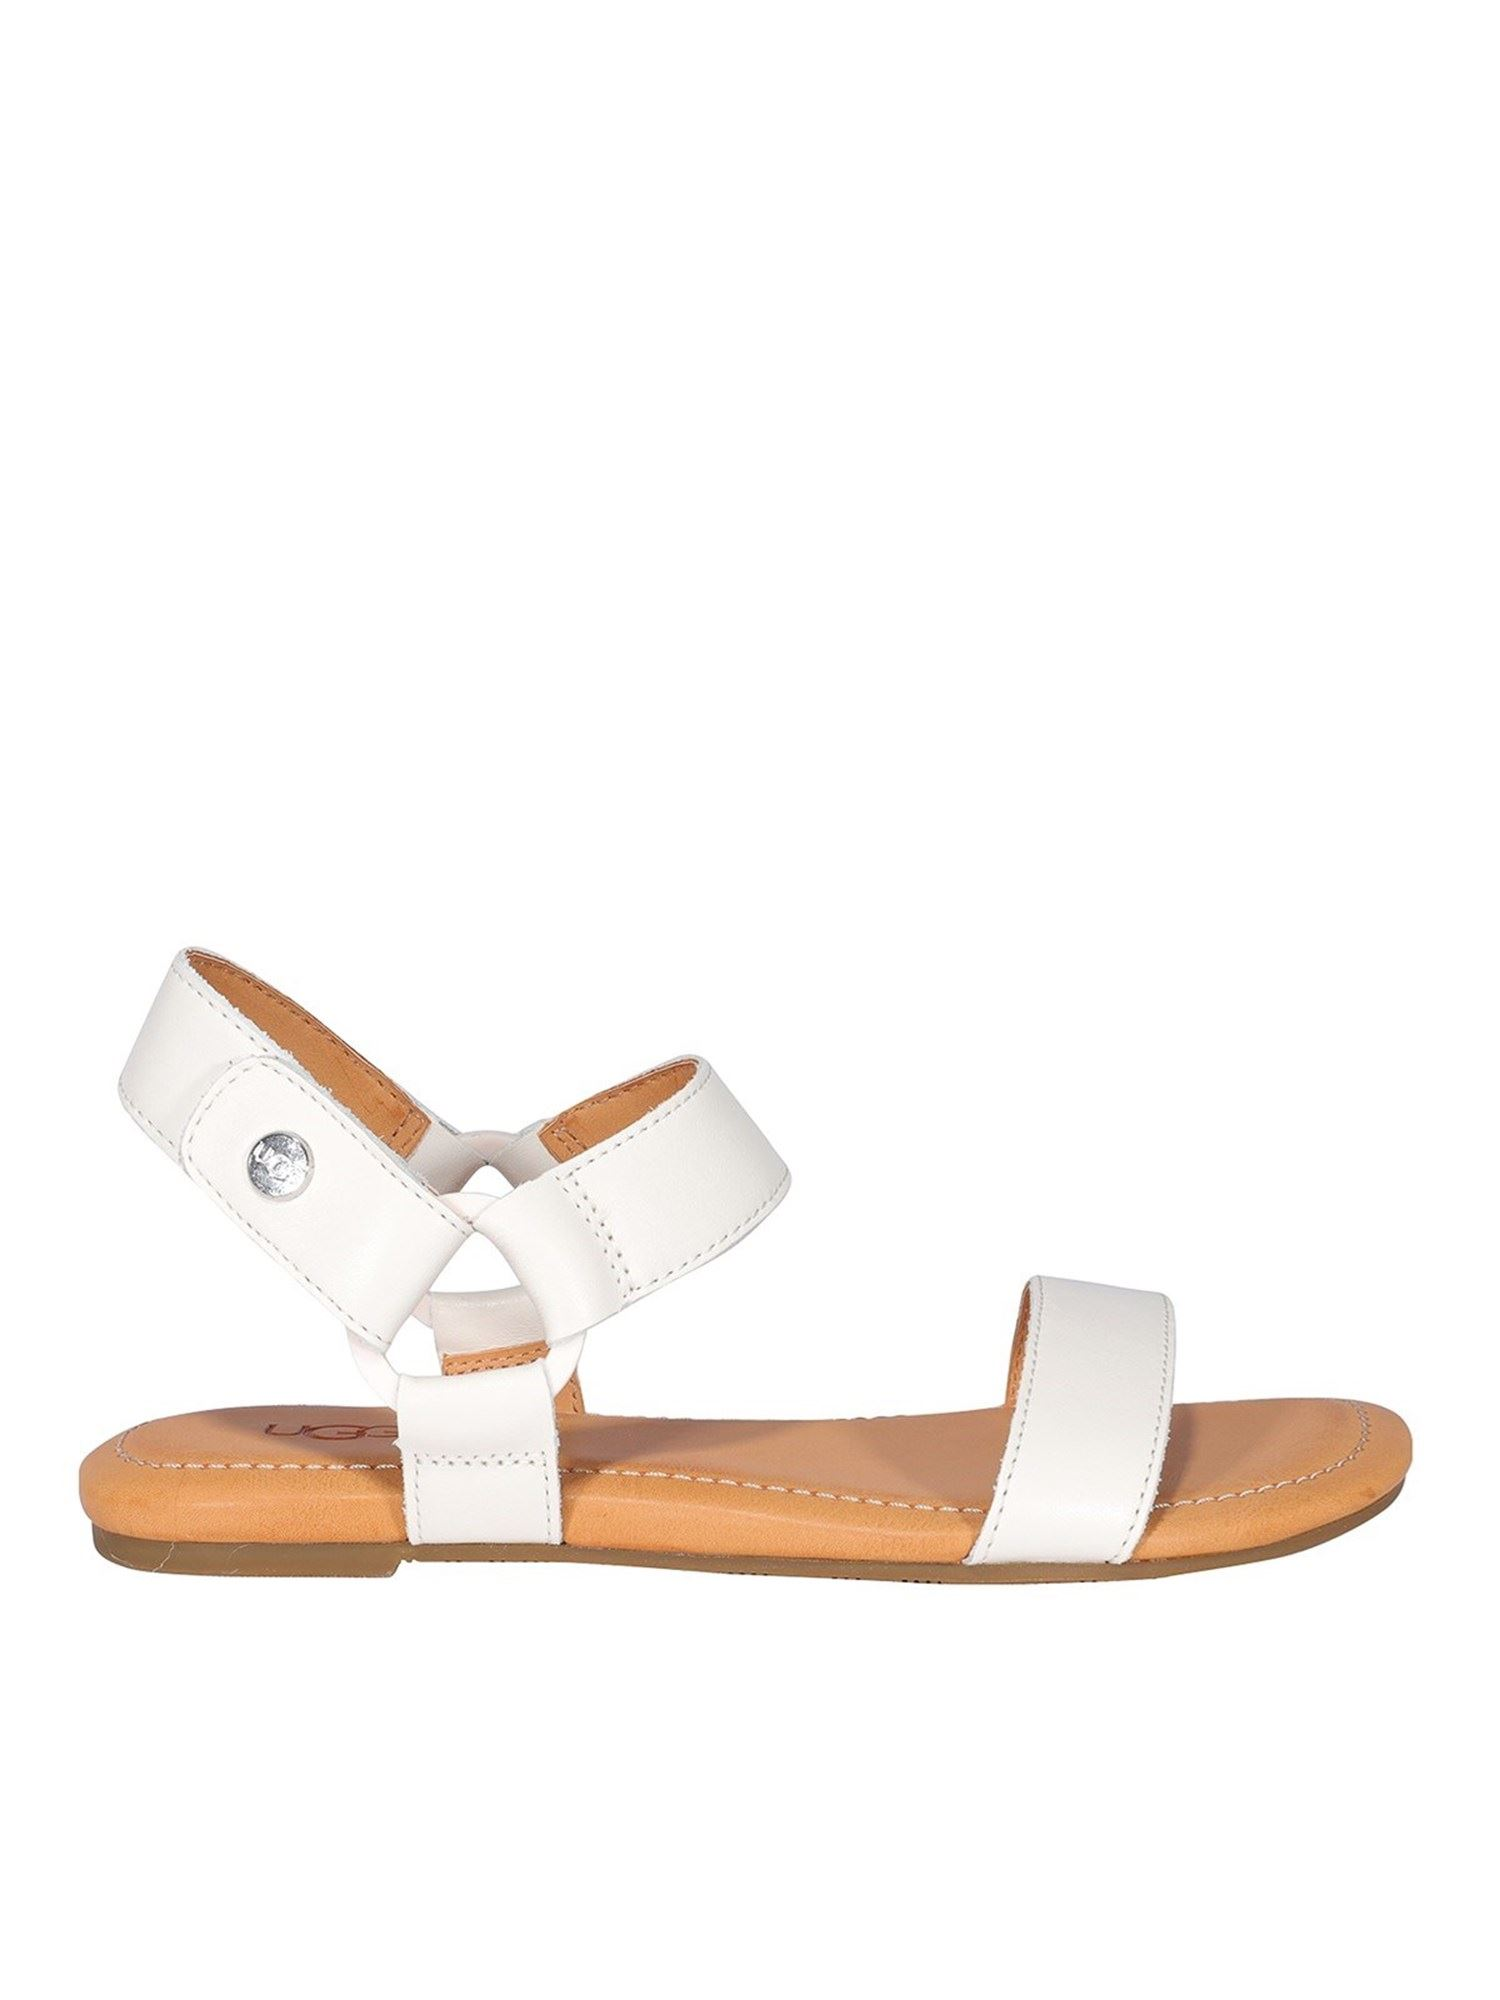 Ugg UGG RYNELL SANDALS IN WHITE